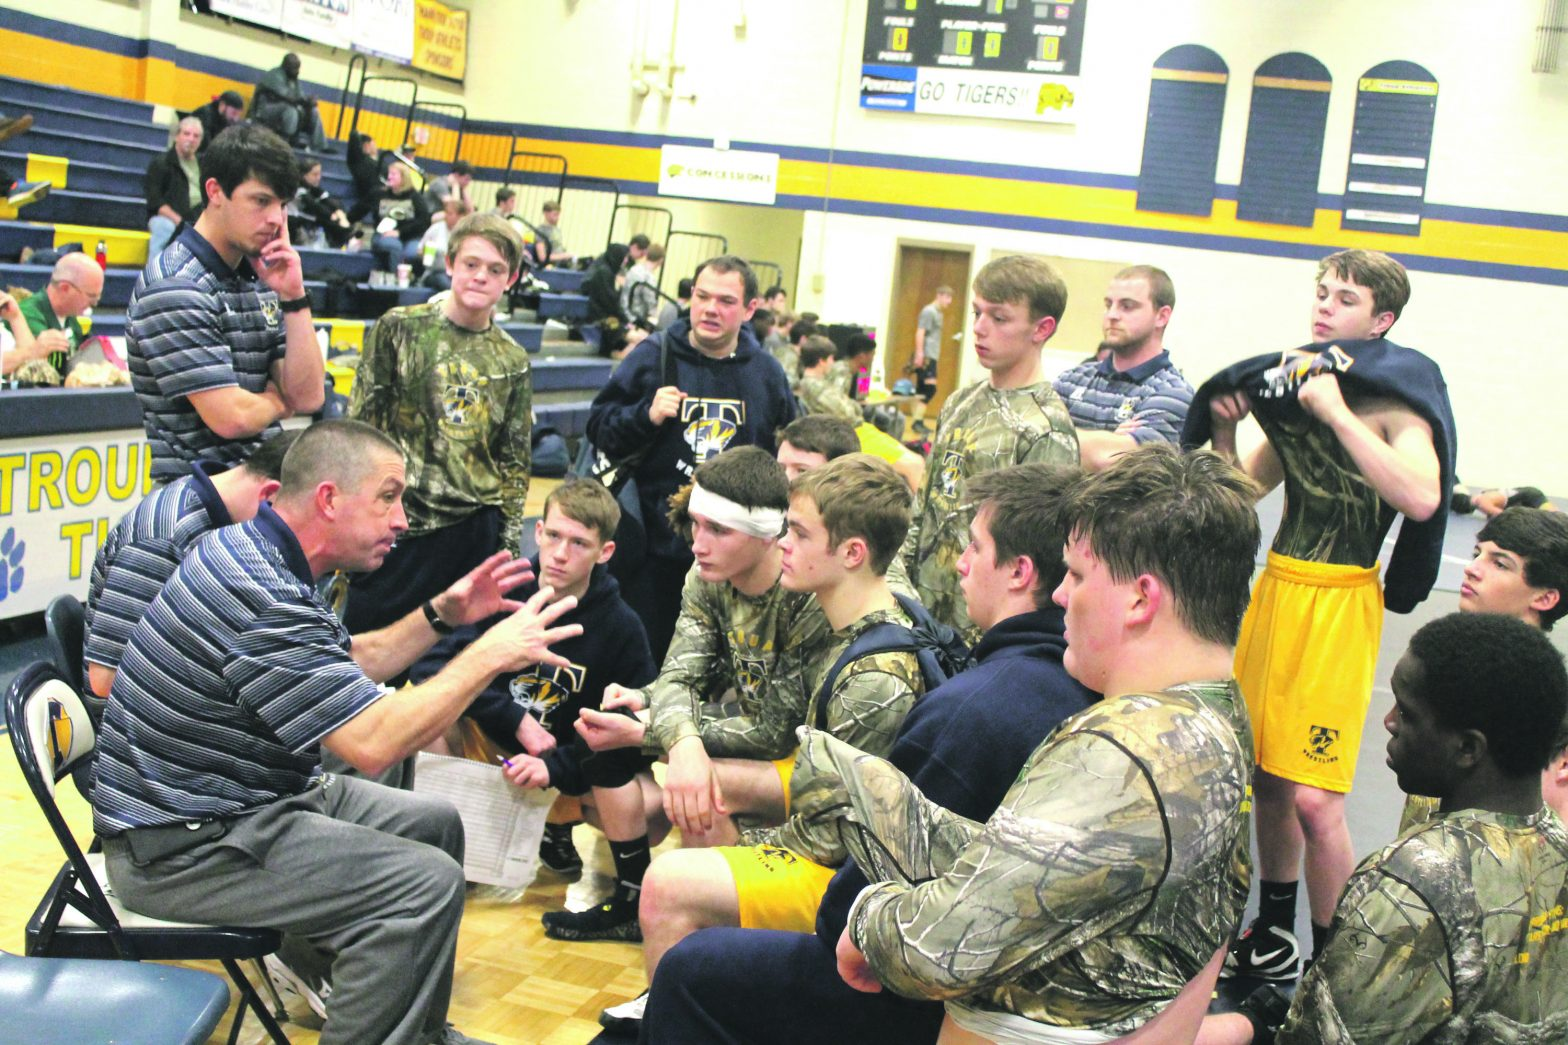 Seals Goes Unbeaten At 9-0,  Troup Finishes In Fourth Place